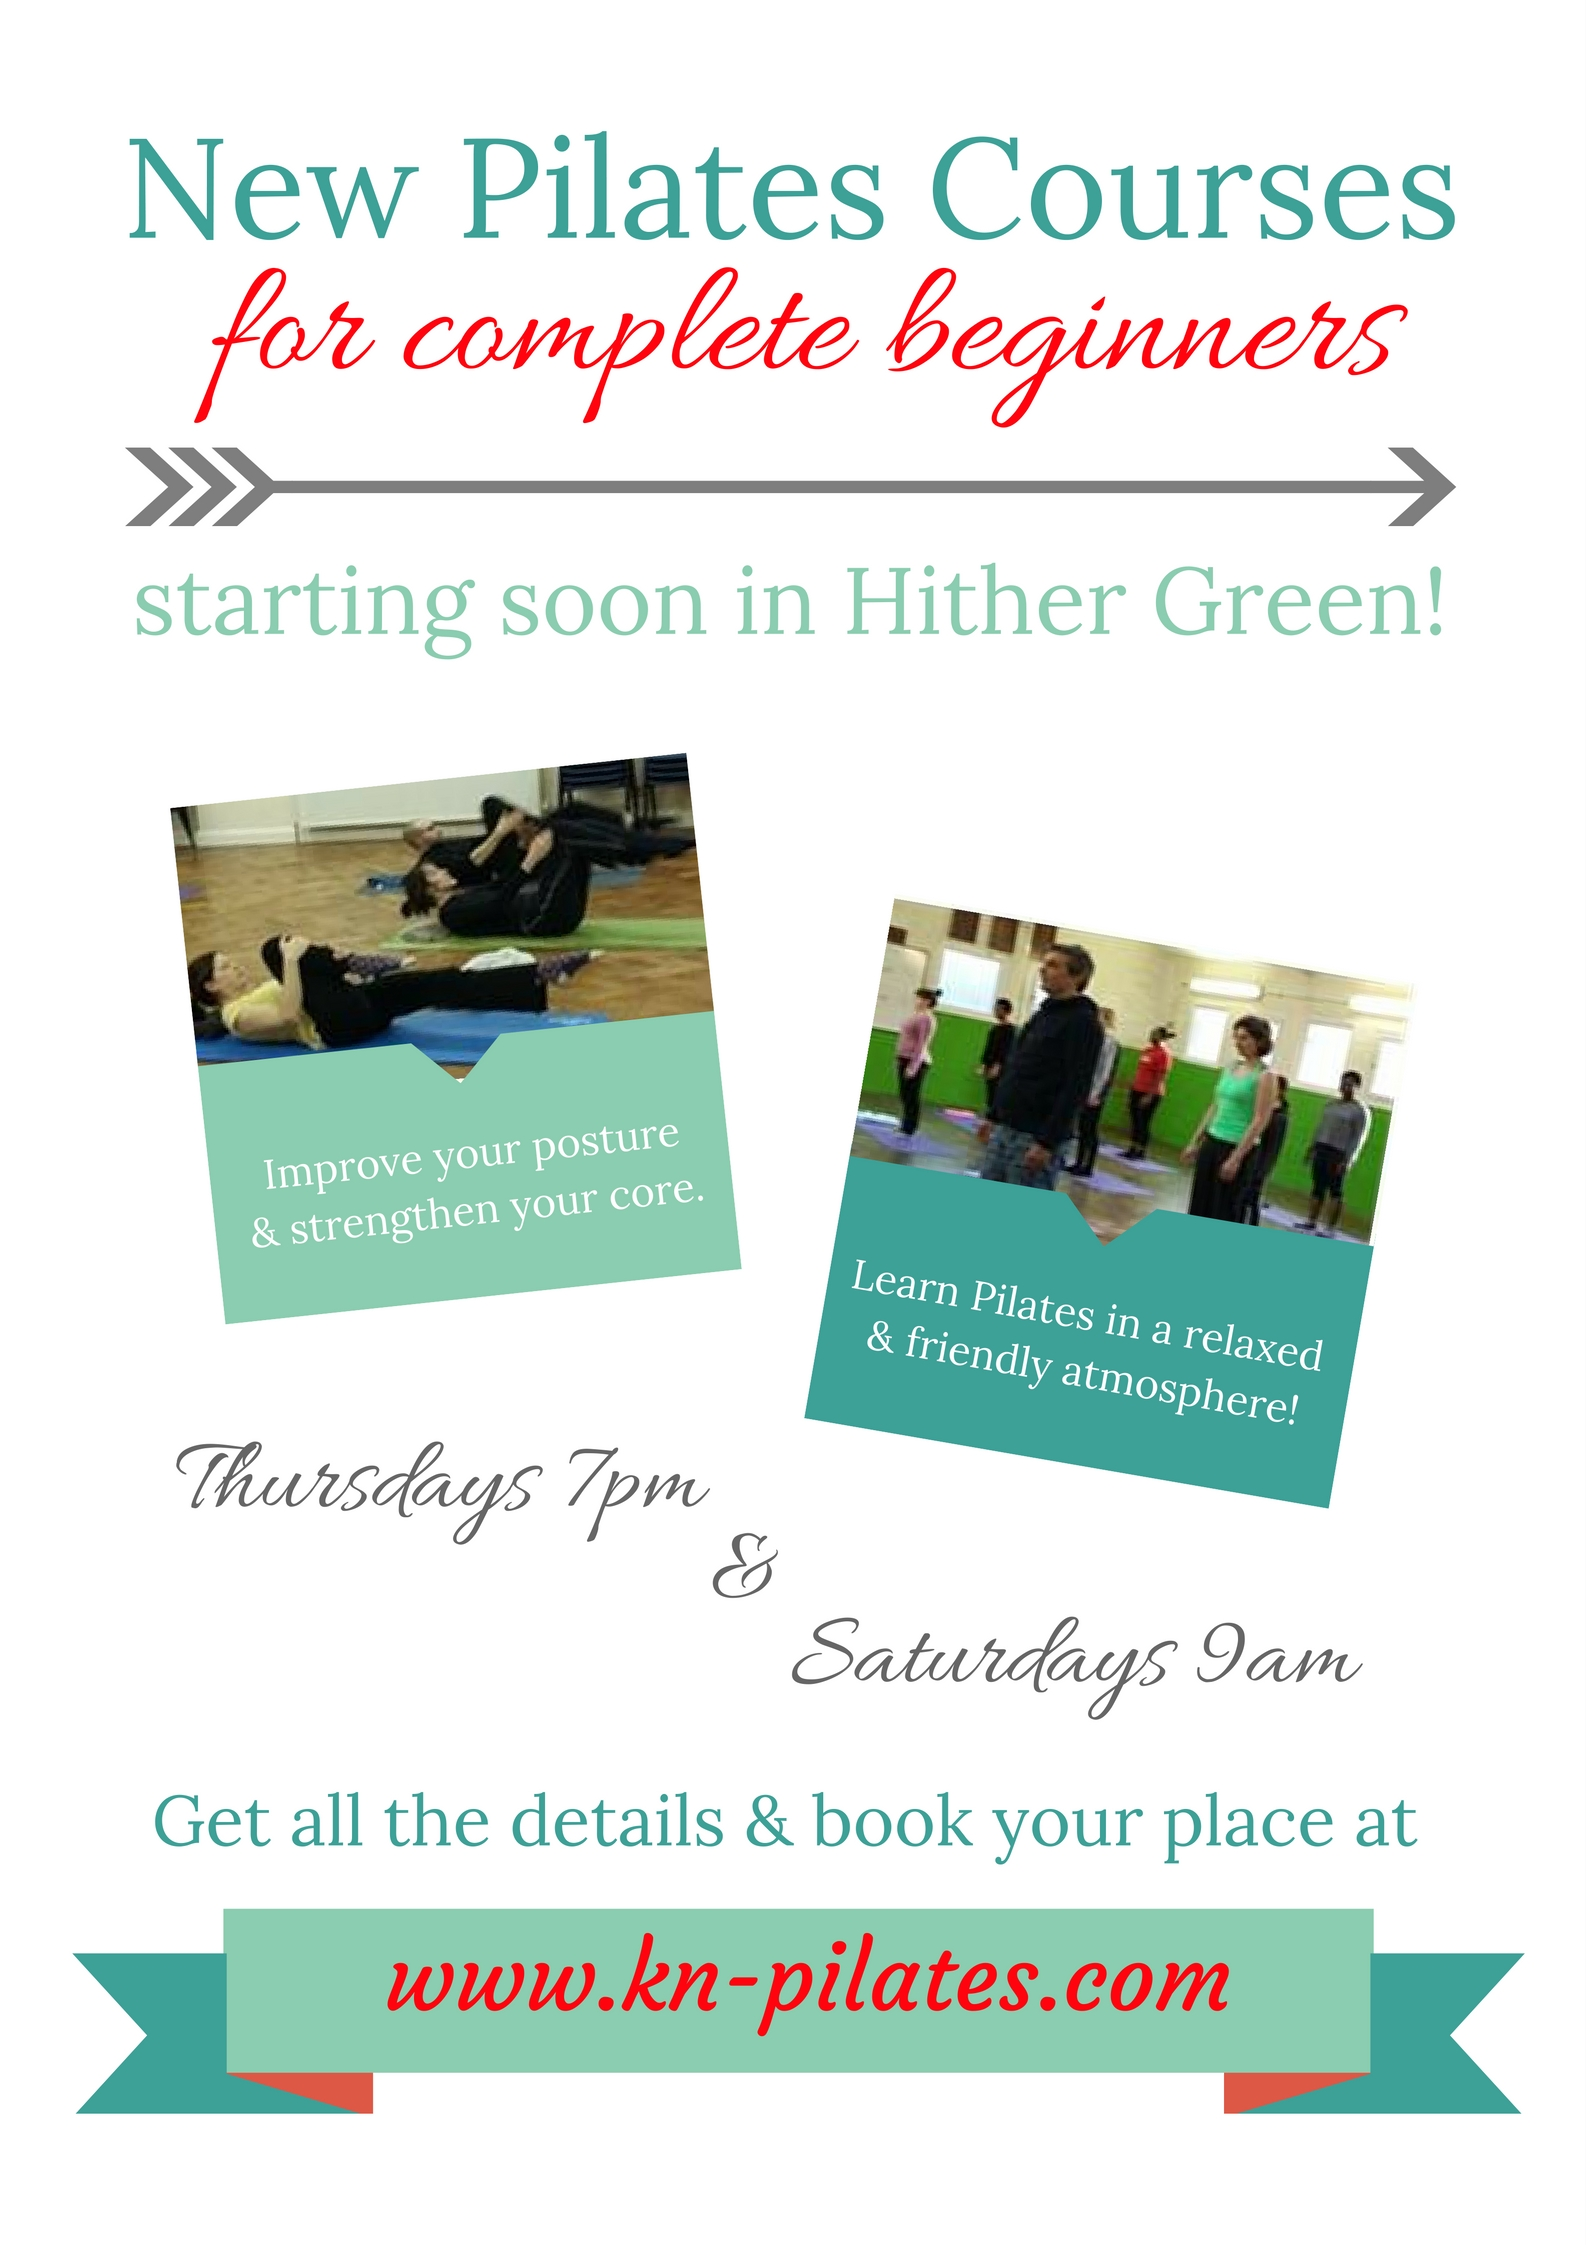 New Pilates Course